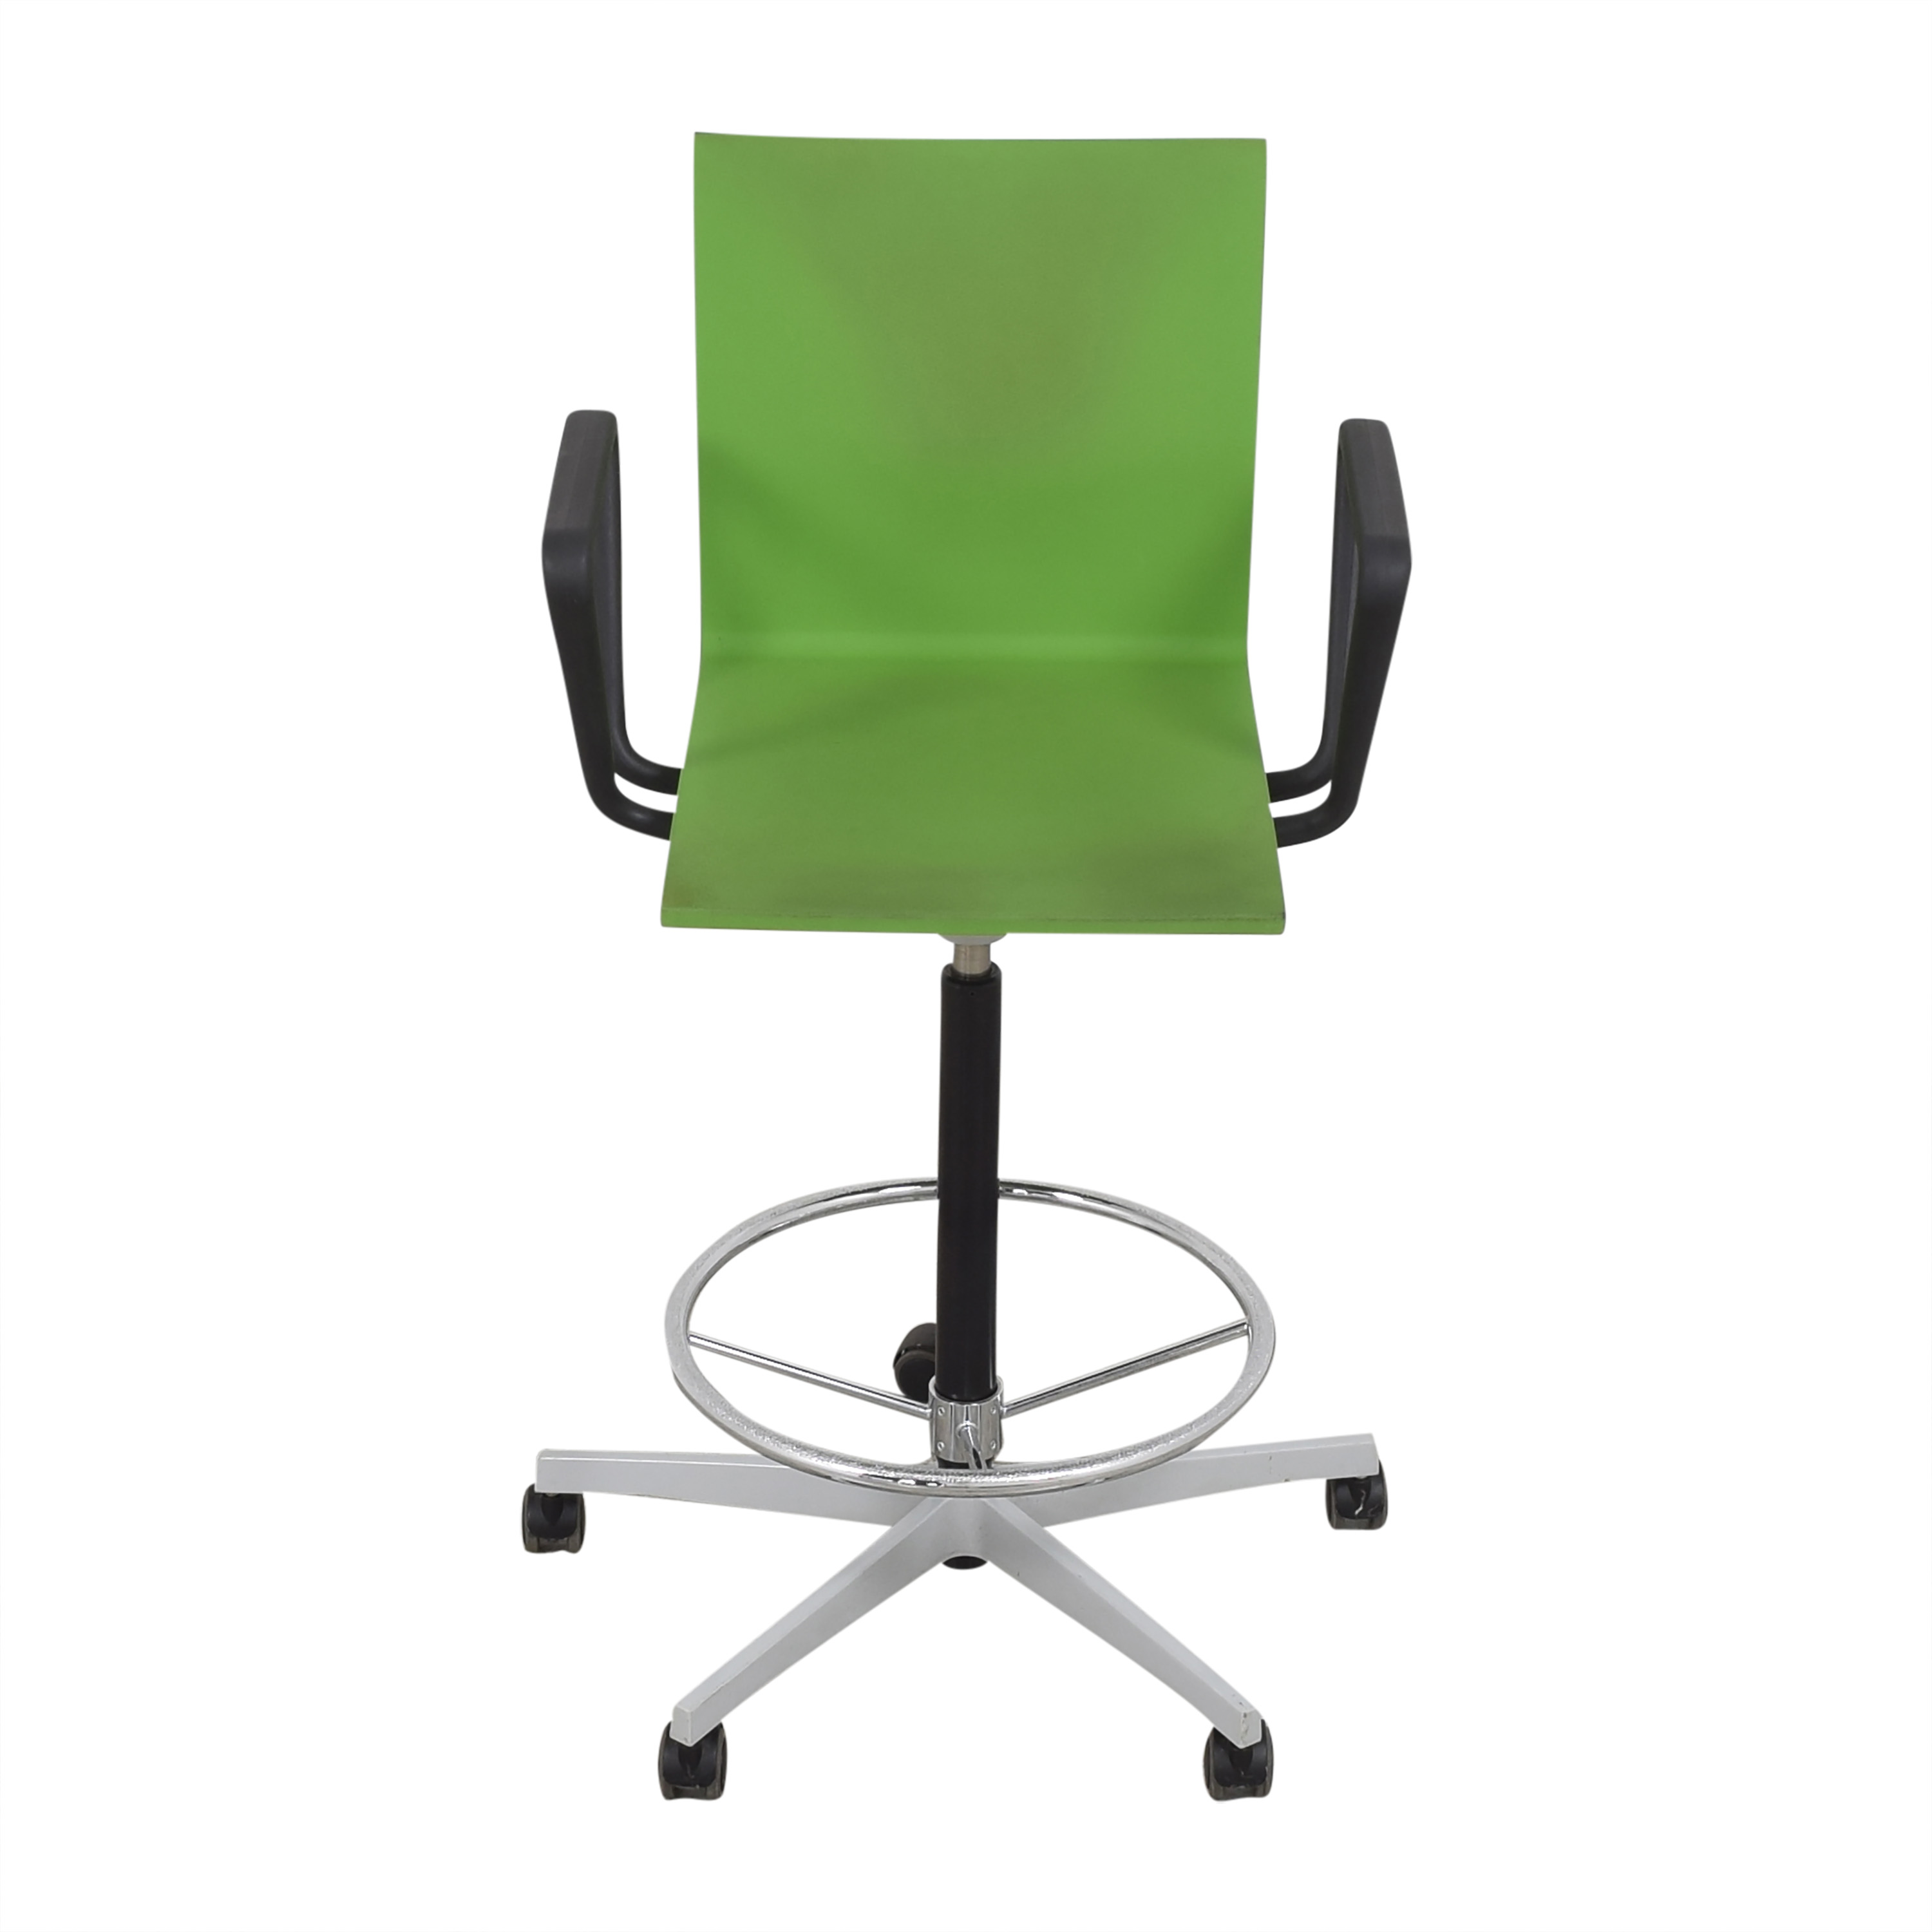 Vitra Vitra .04 Counter Arm Chair second hand